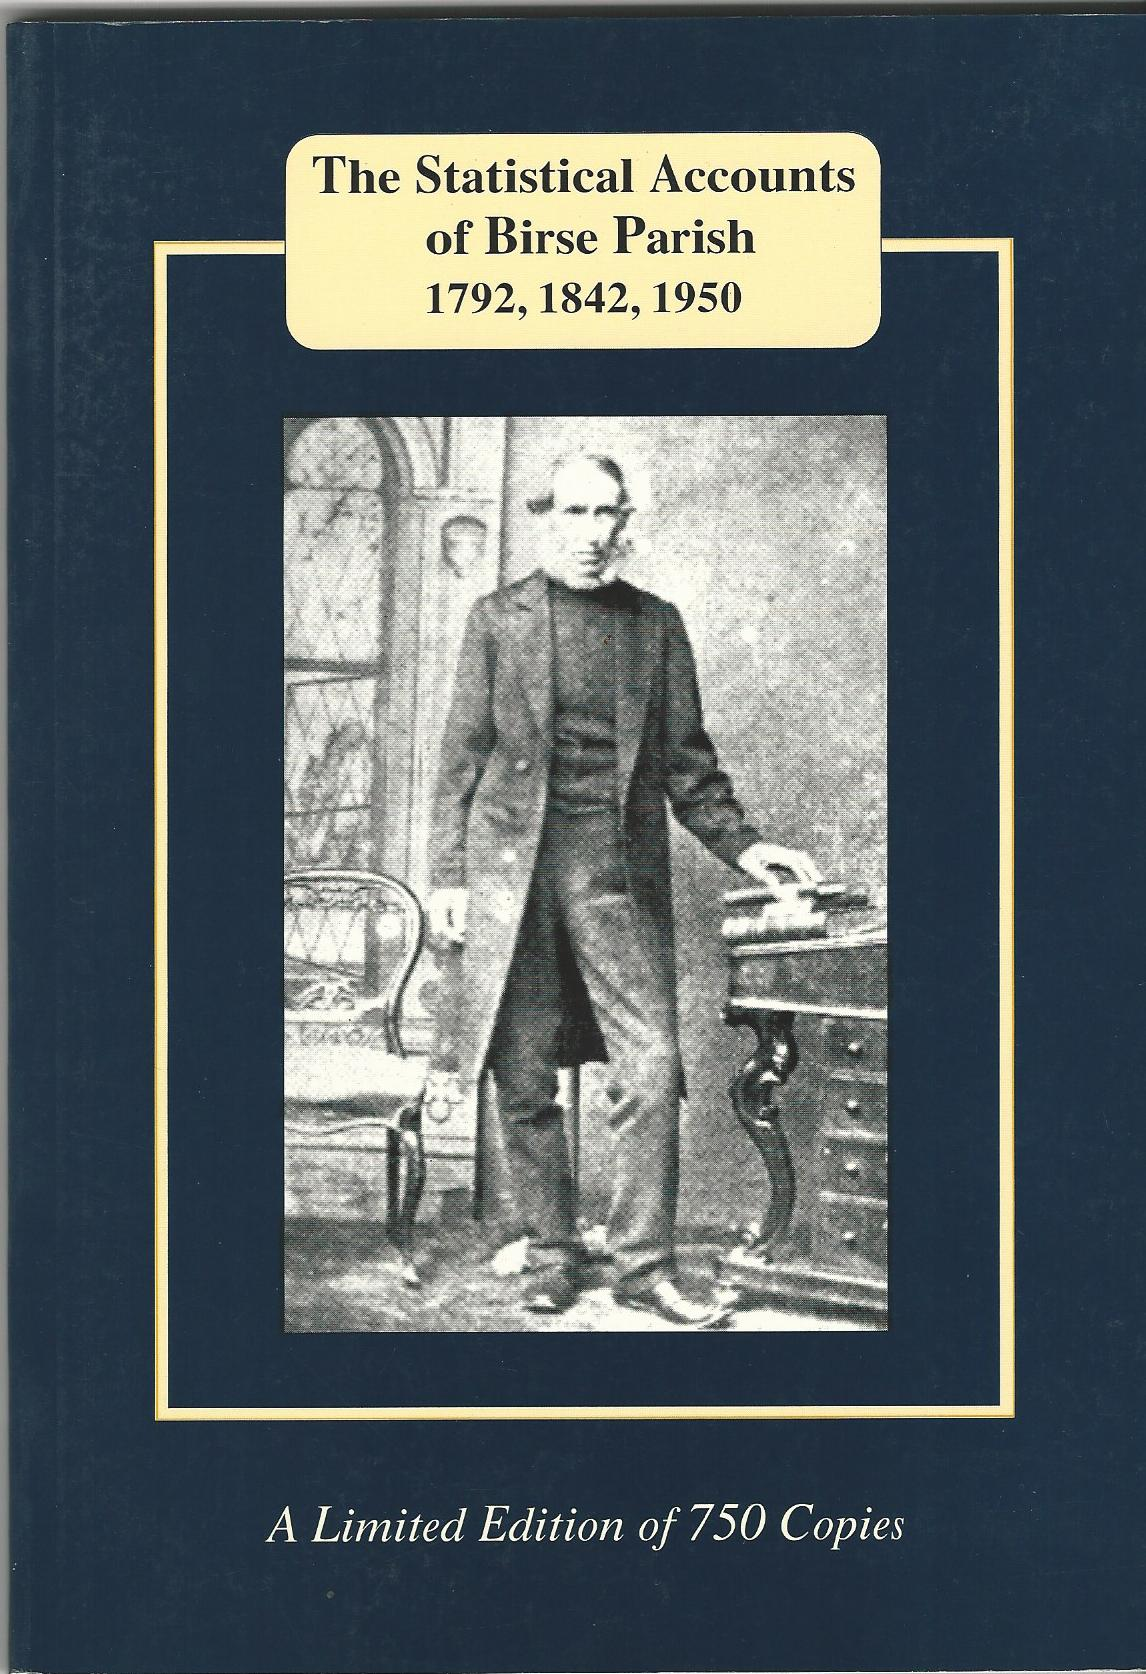 Image for The Statistical Accounts of Birse Parish 1792, 1842, 1950.